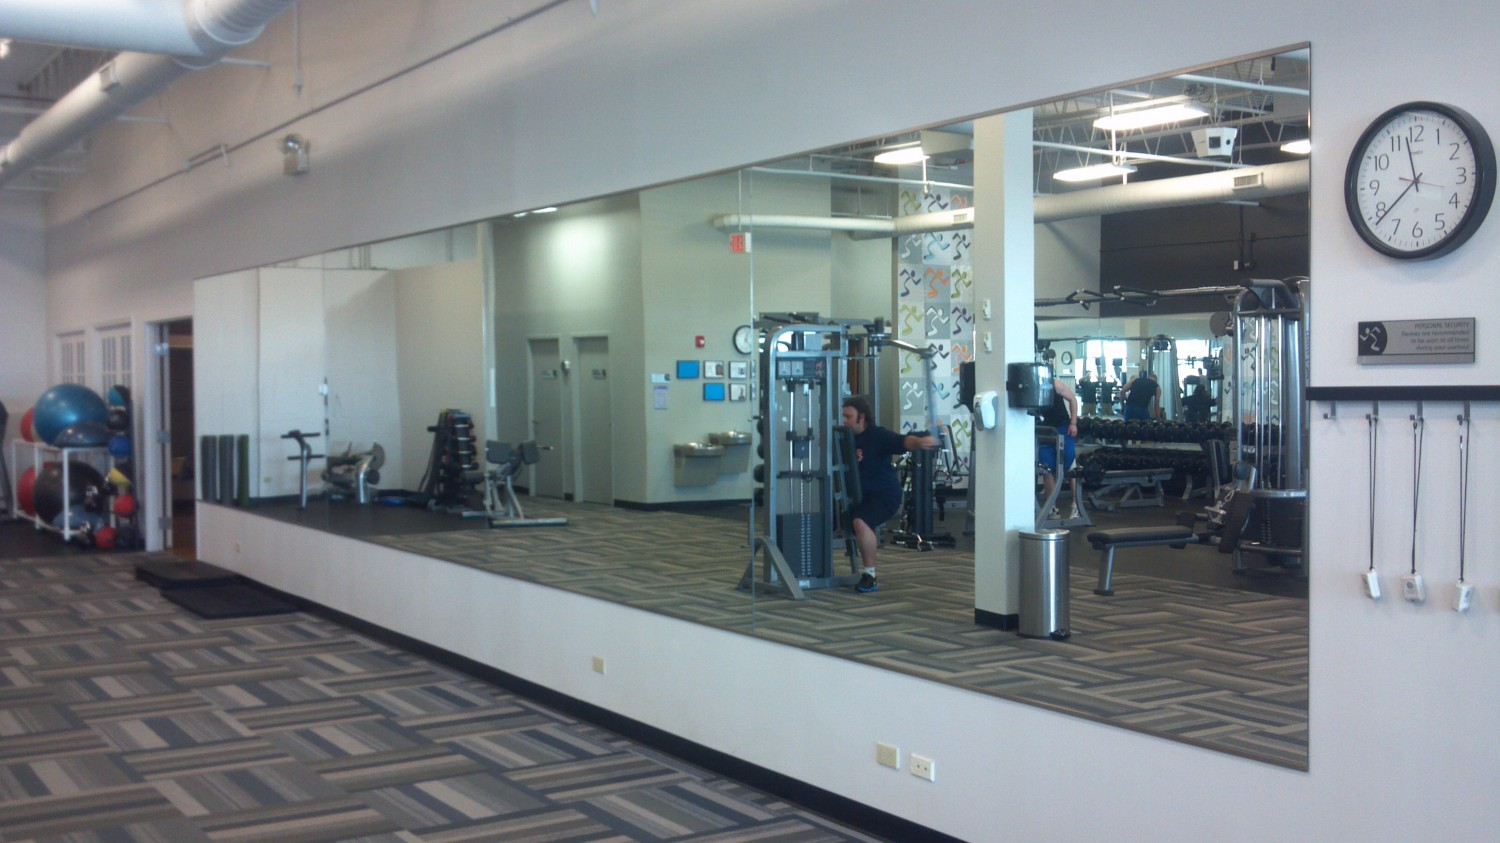 Gym wall mirror